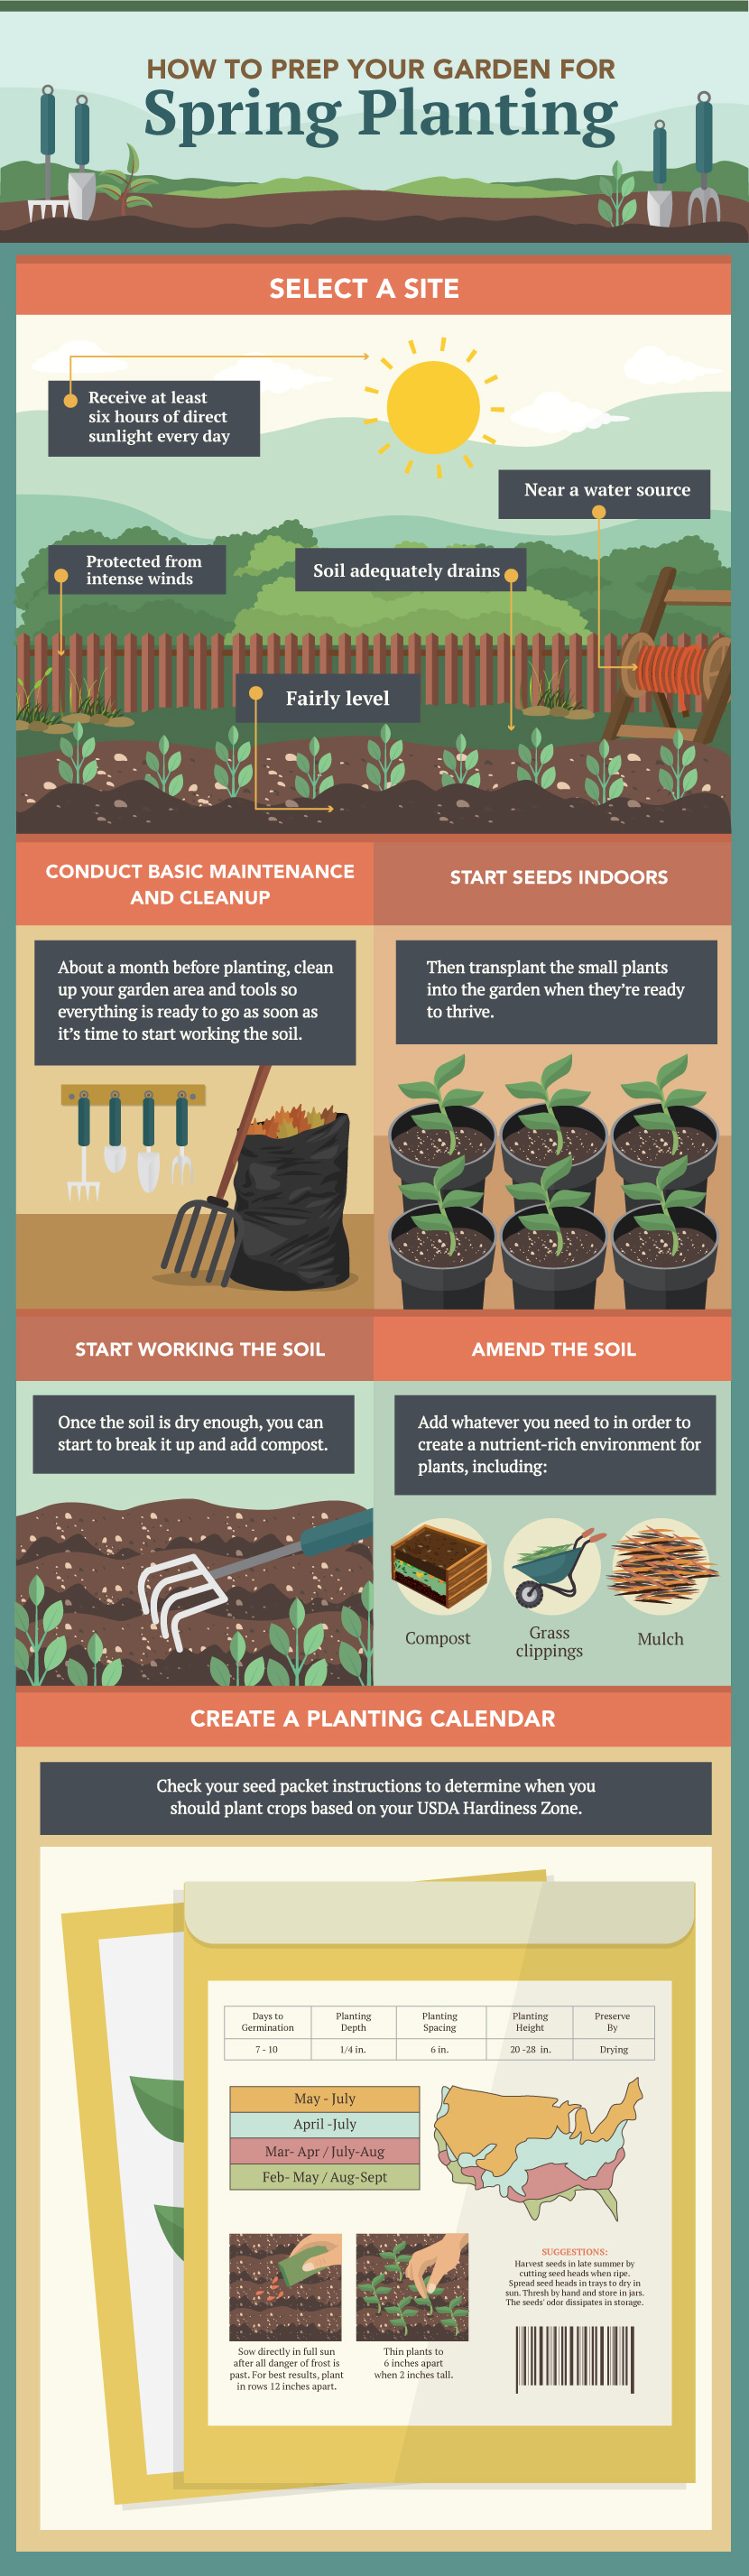 Spring Planting: How to Prep Your Garden For Spring Planting